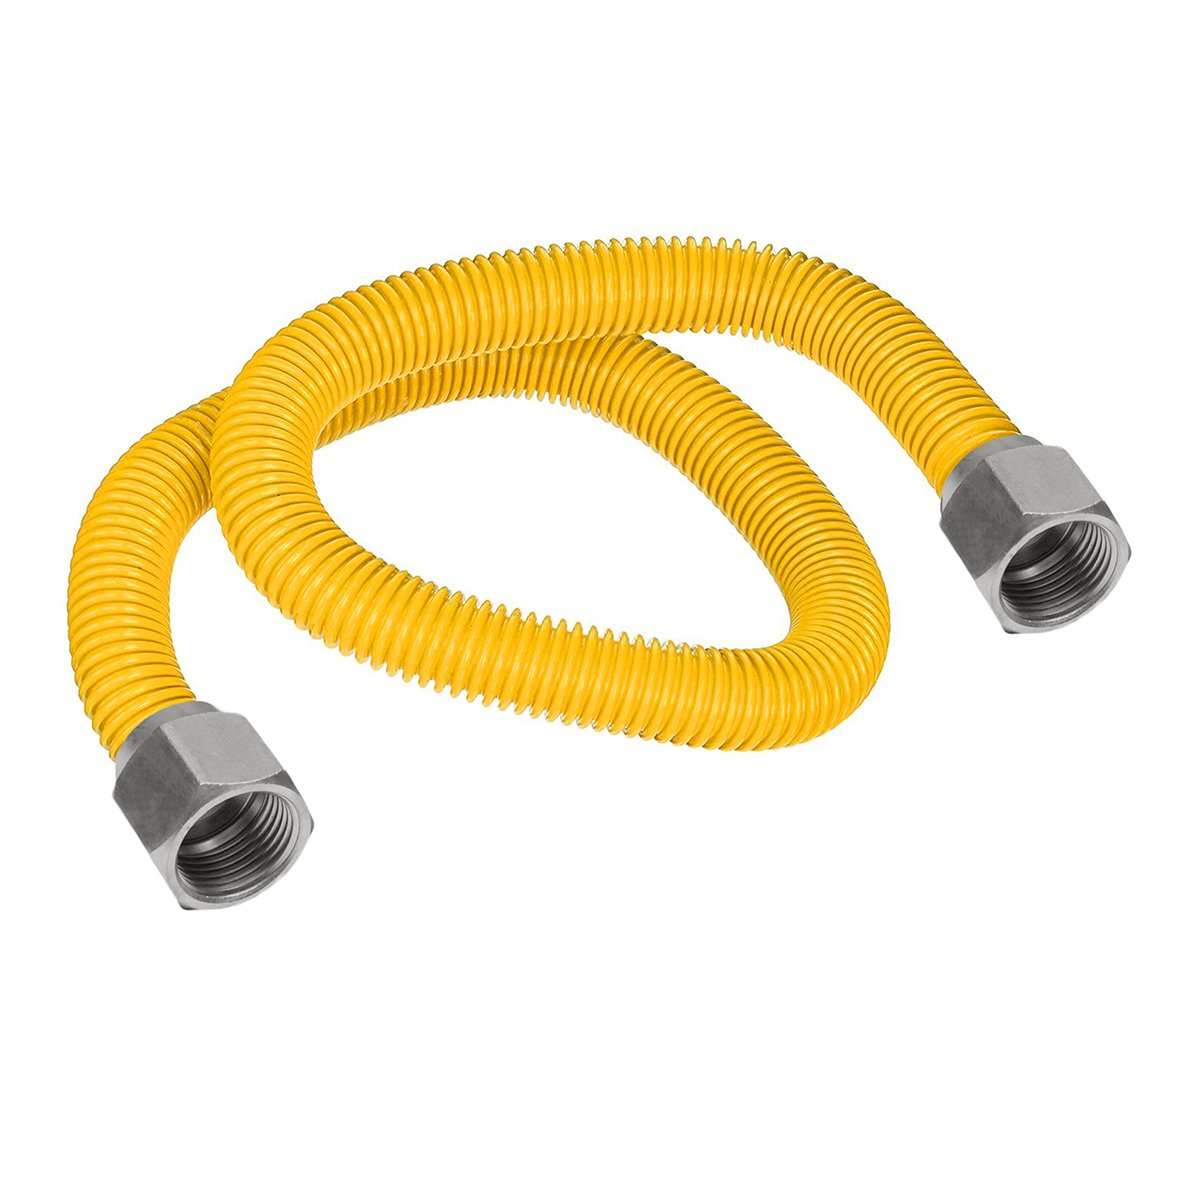 Flextron FTGC-YC12-24 22'' Flexible Epoxy Coated Gas Line Connector with 5/8'' Outer Diameter and Nut Fittings, Yellow/Stainless Steel